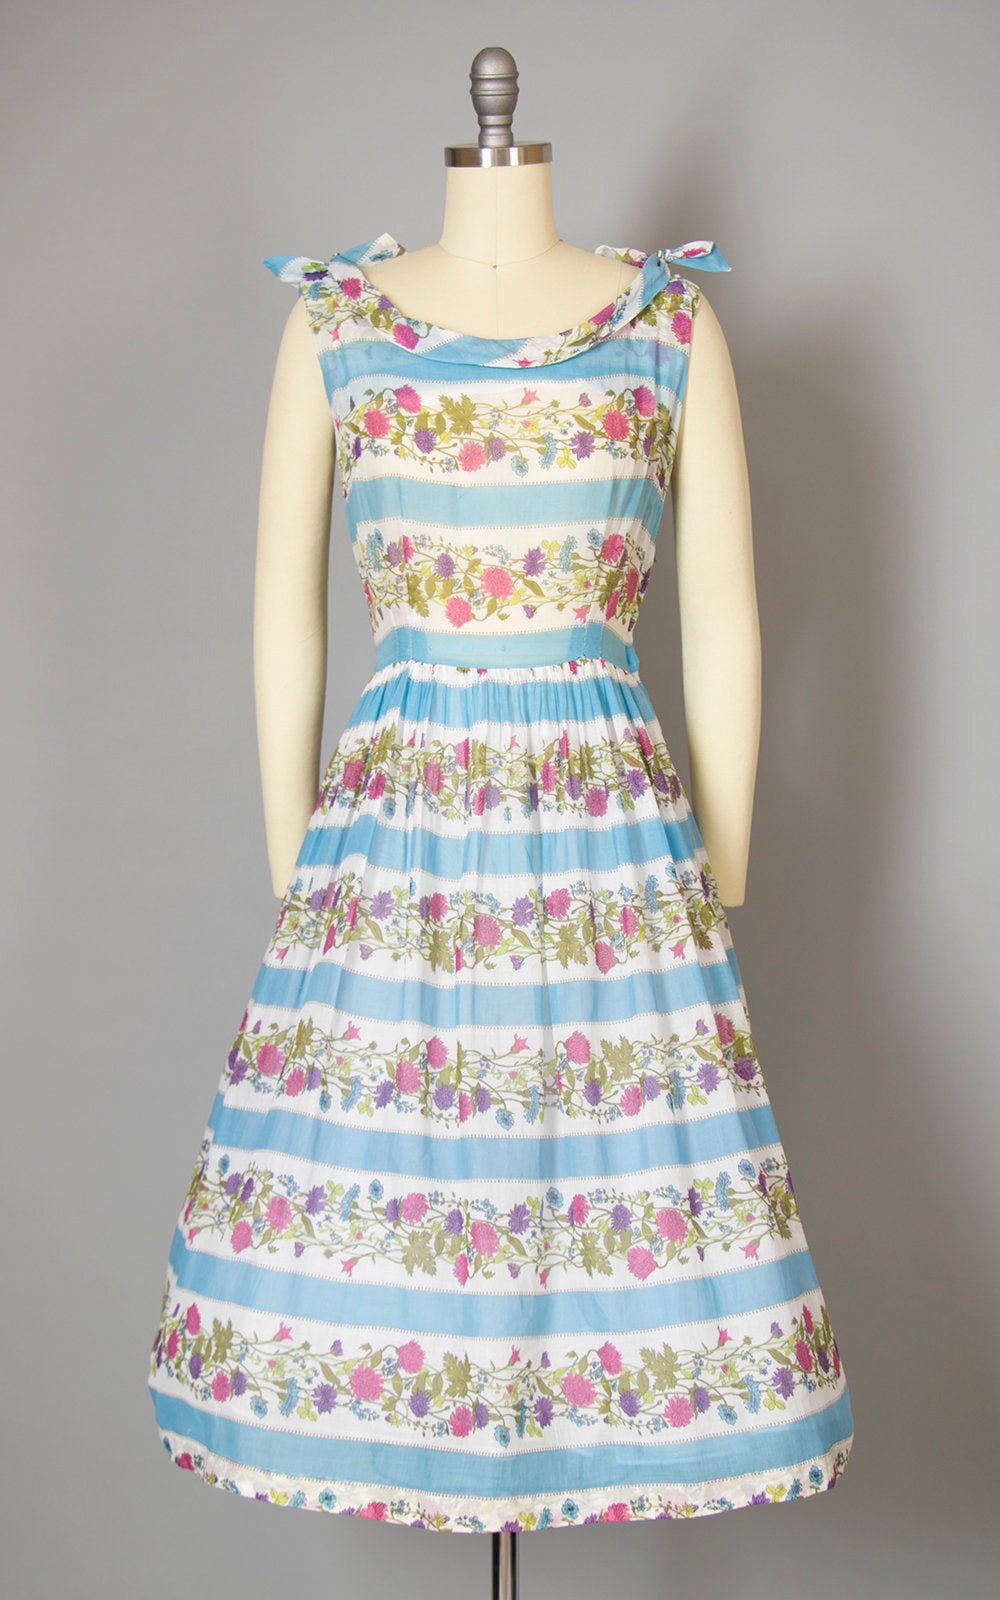 Vintage 1950s Dress | 50s Floral Cotton Voile Sundress Blue White Sun Dress Striped Full Skirt Day Dress (small)